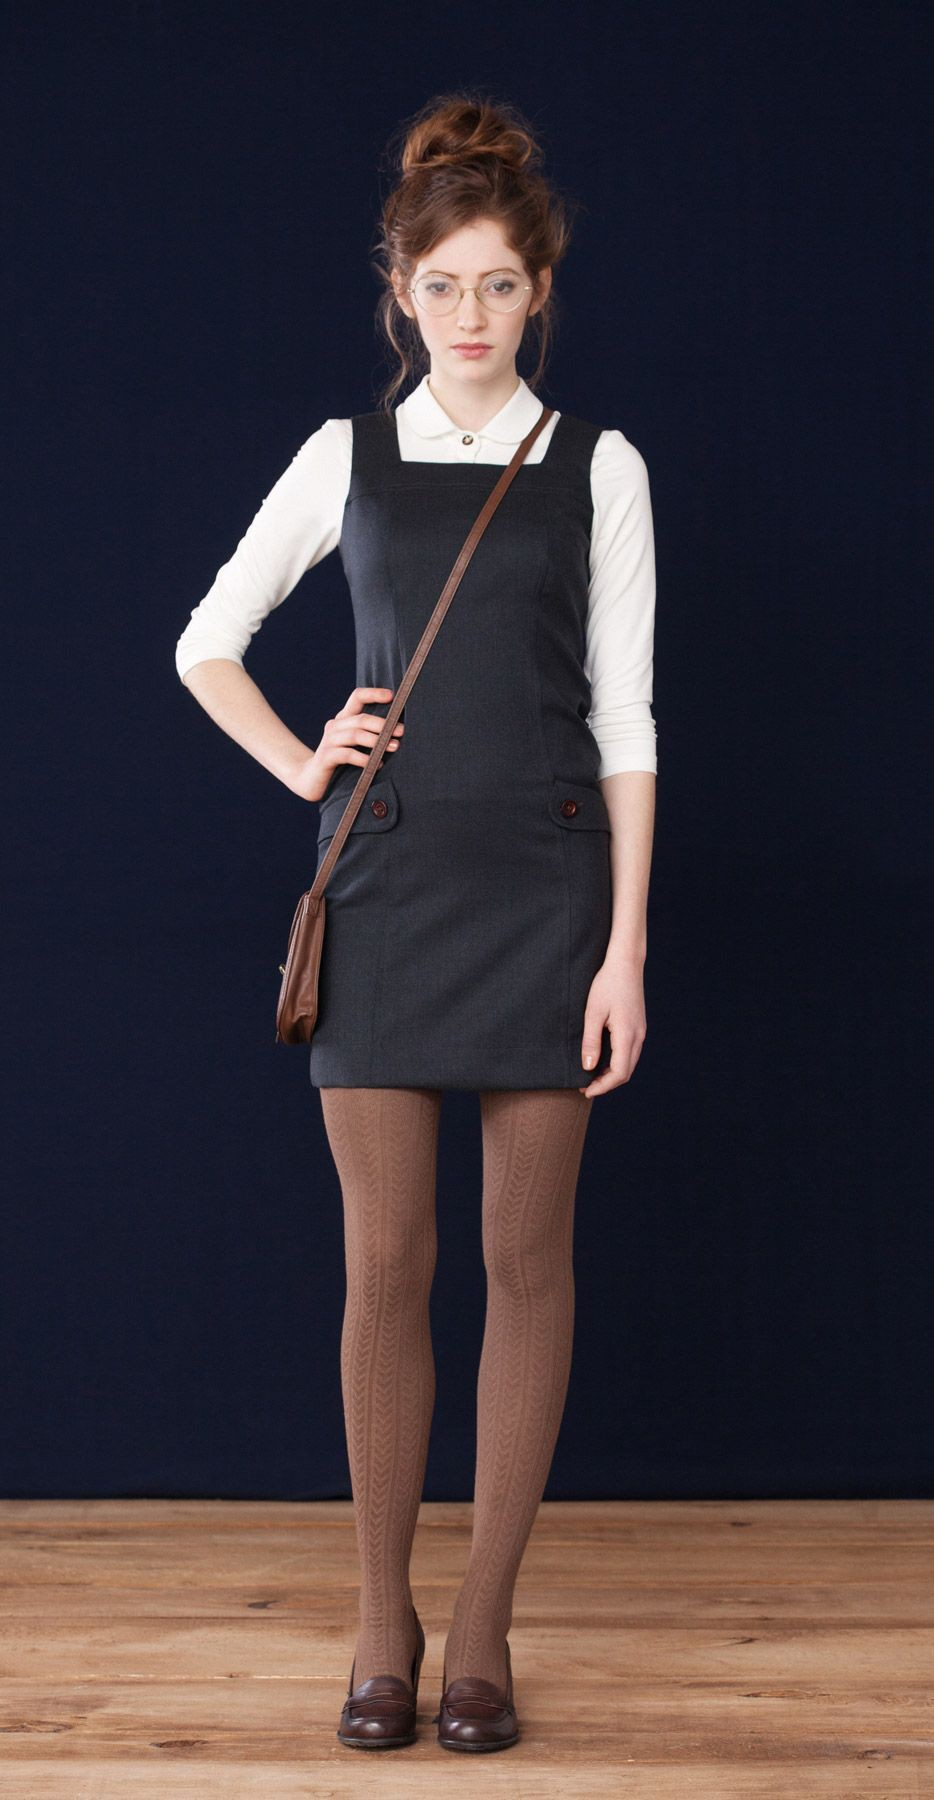 Colour outfit with little black dress, cocktail dress, little black dress, tights, skirt